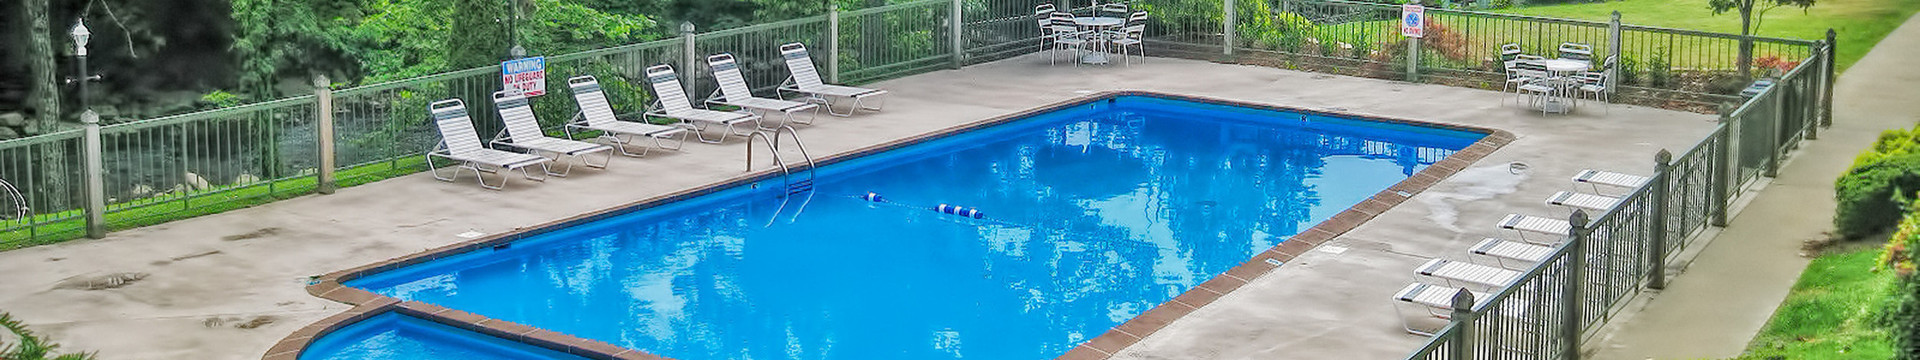 Pool - River Terrace Resort & Convention Center